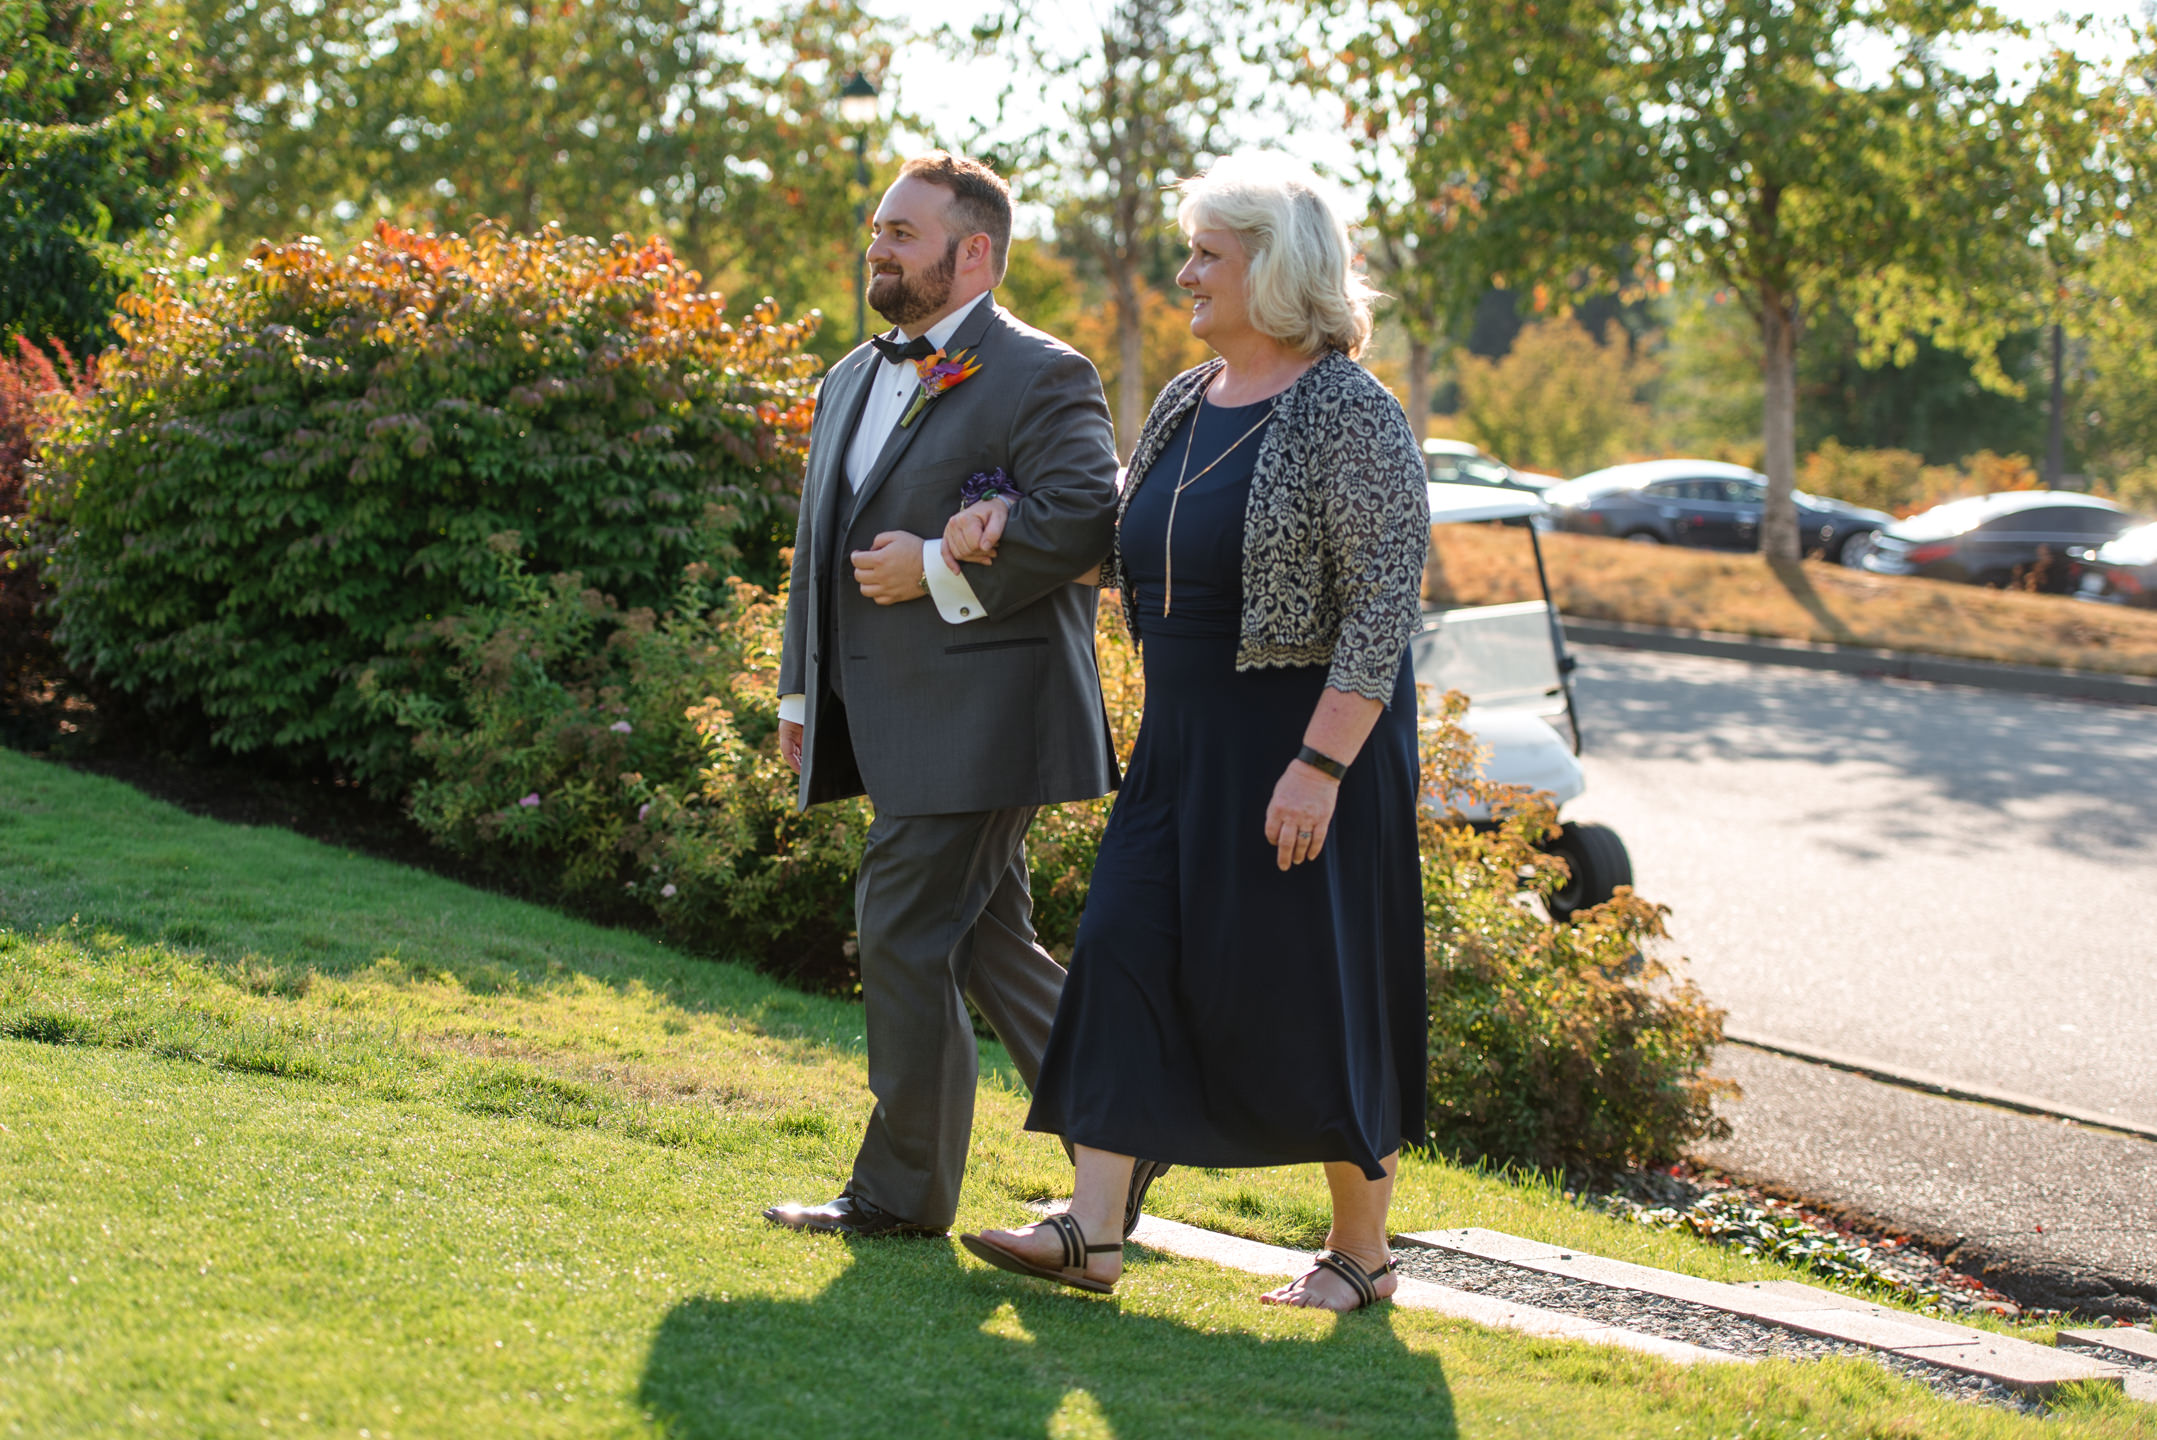 Groom and Mother Walk Down Aisle at Wedding Ceremony